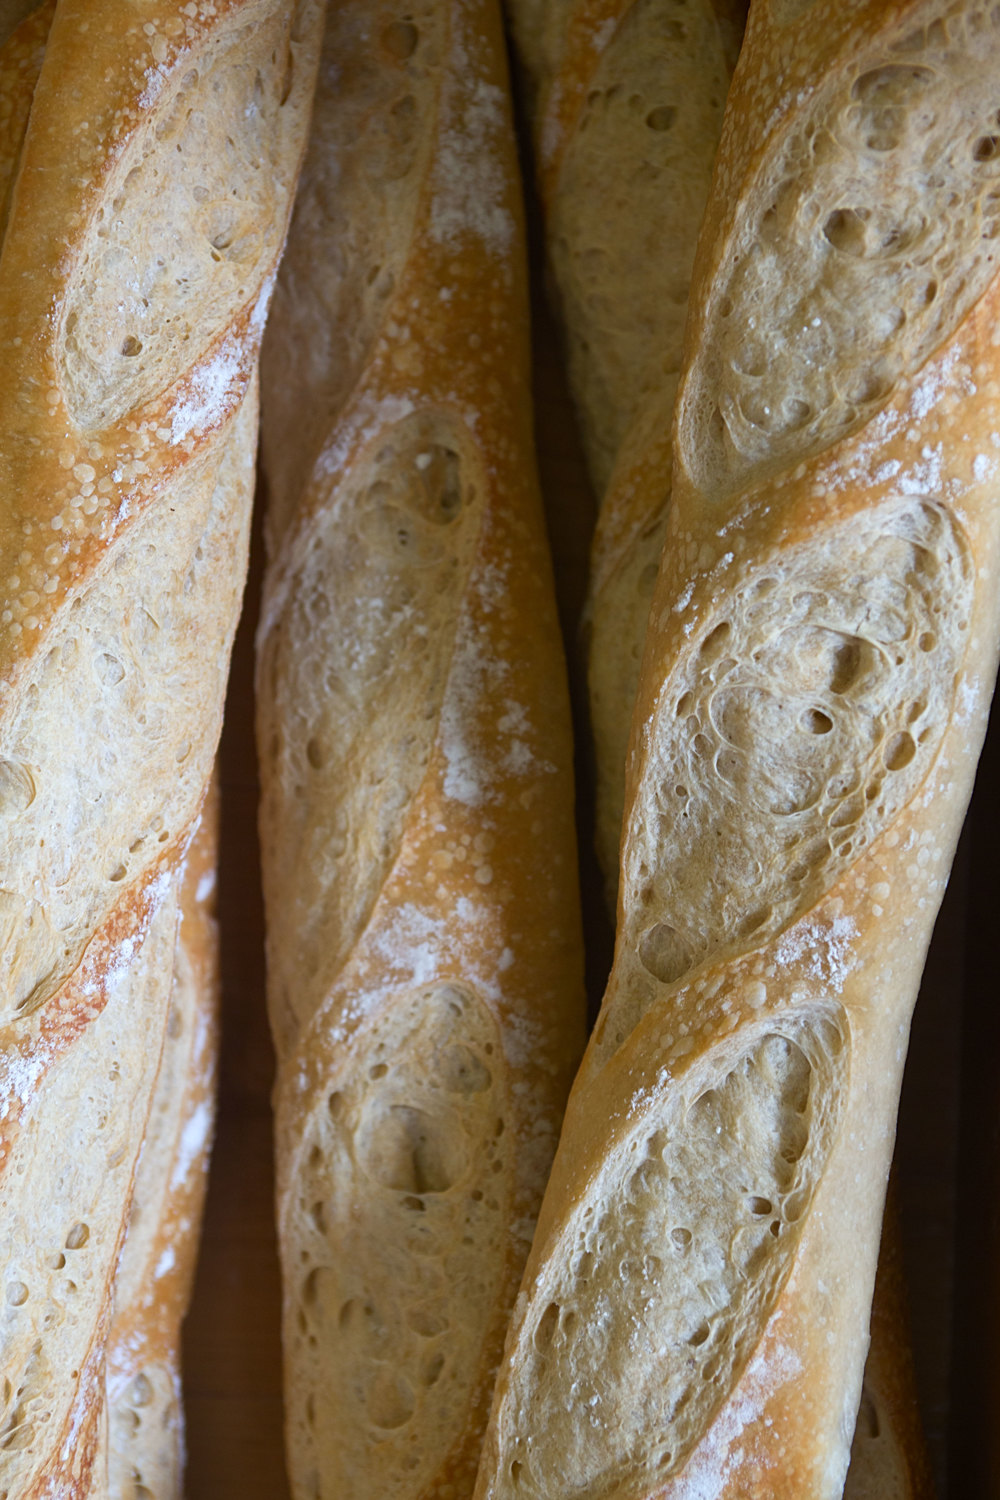 Fresh breads from the St. Vrain Market Bakery